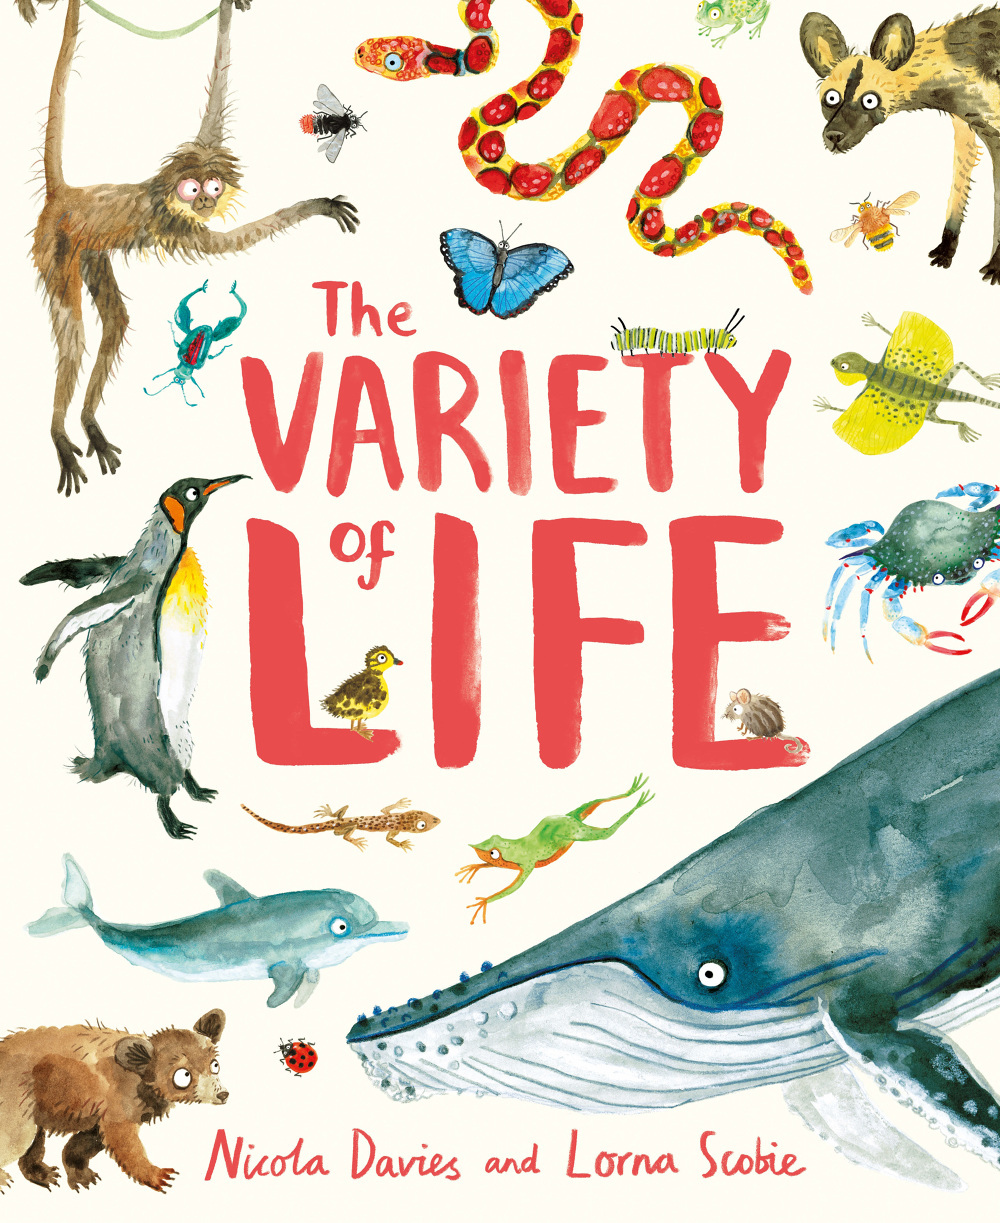 OUT NOW! The Variety of Life - Lorna Scobie Illustration